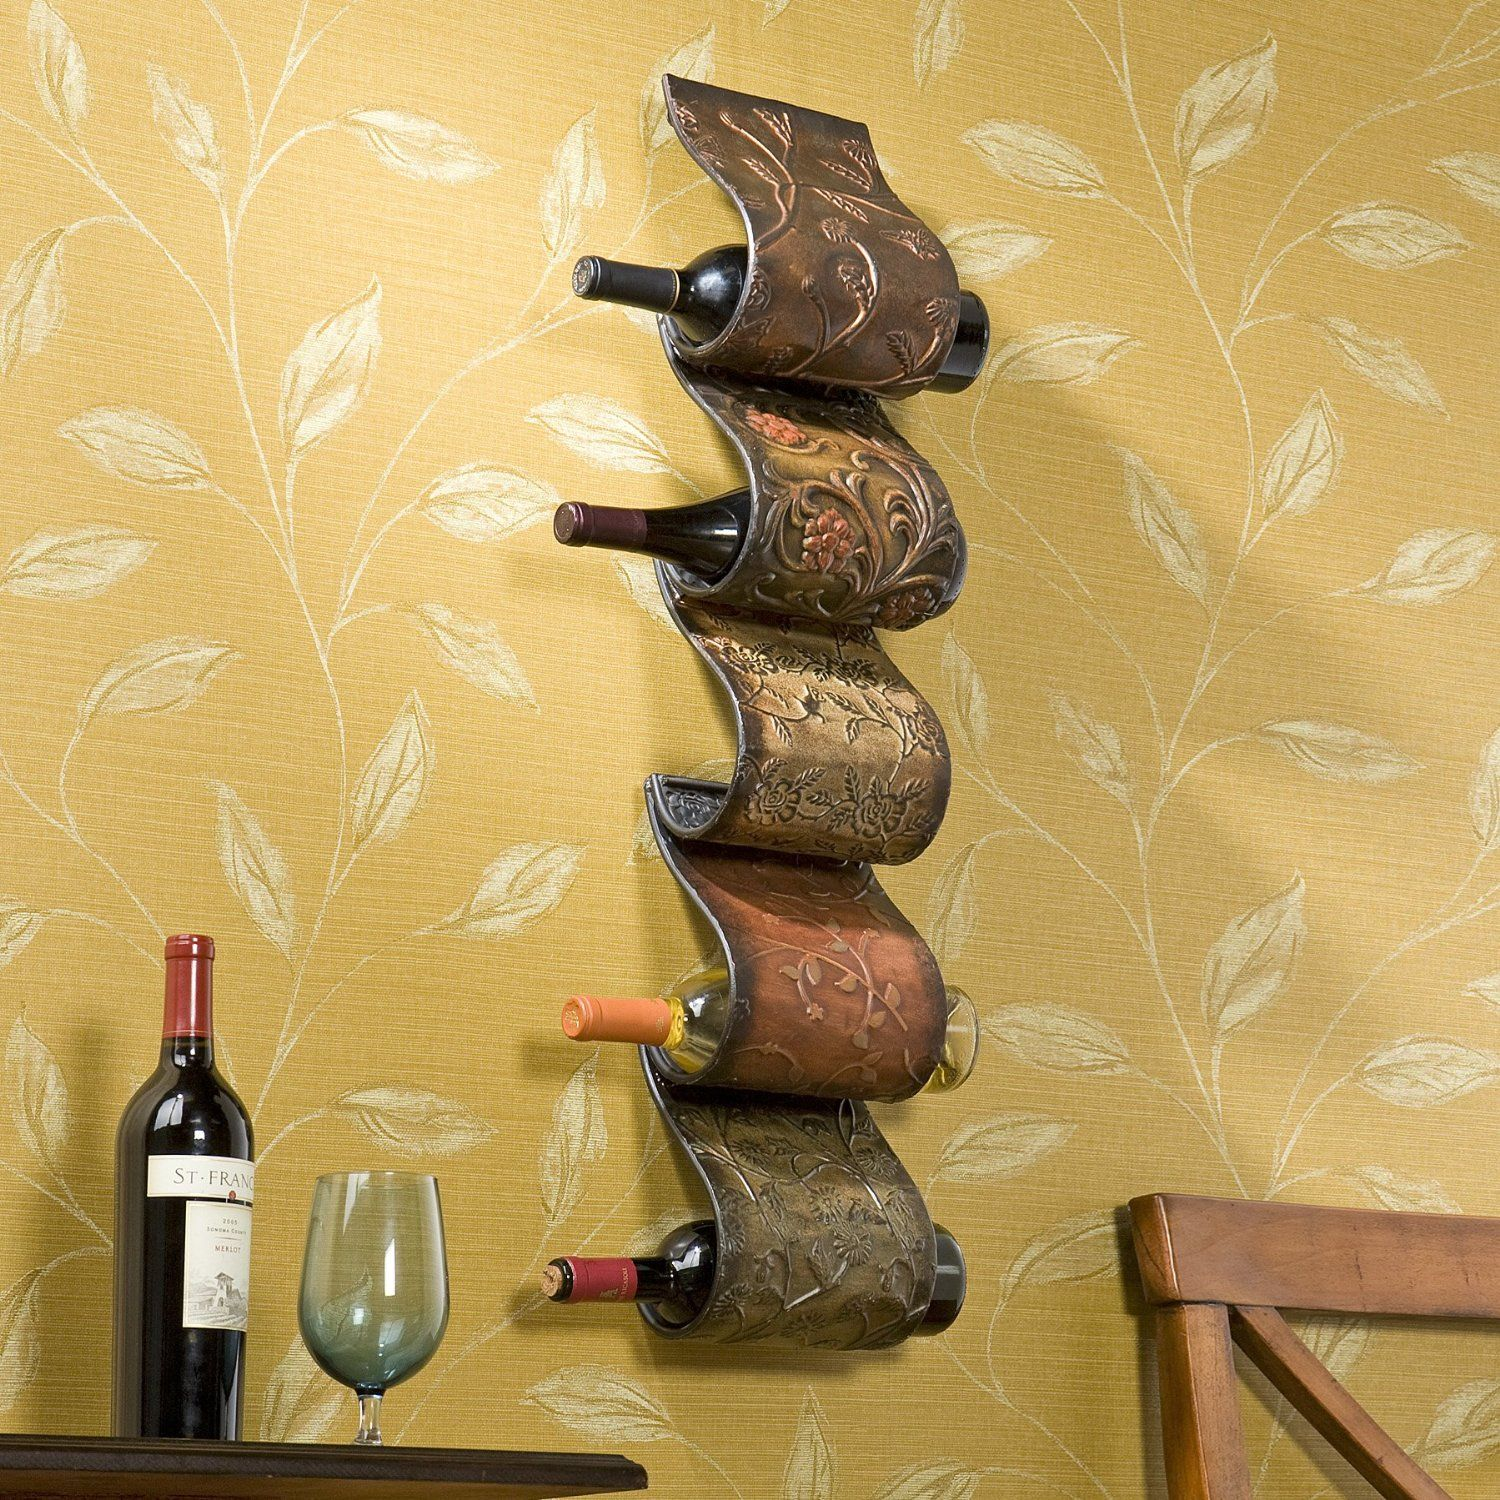 Florenz Wall Mount Wine Rack Sculpture - Metal Wine Rack Wall ...